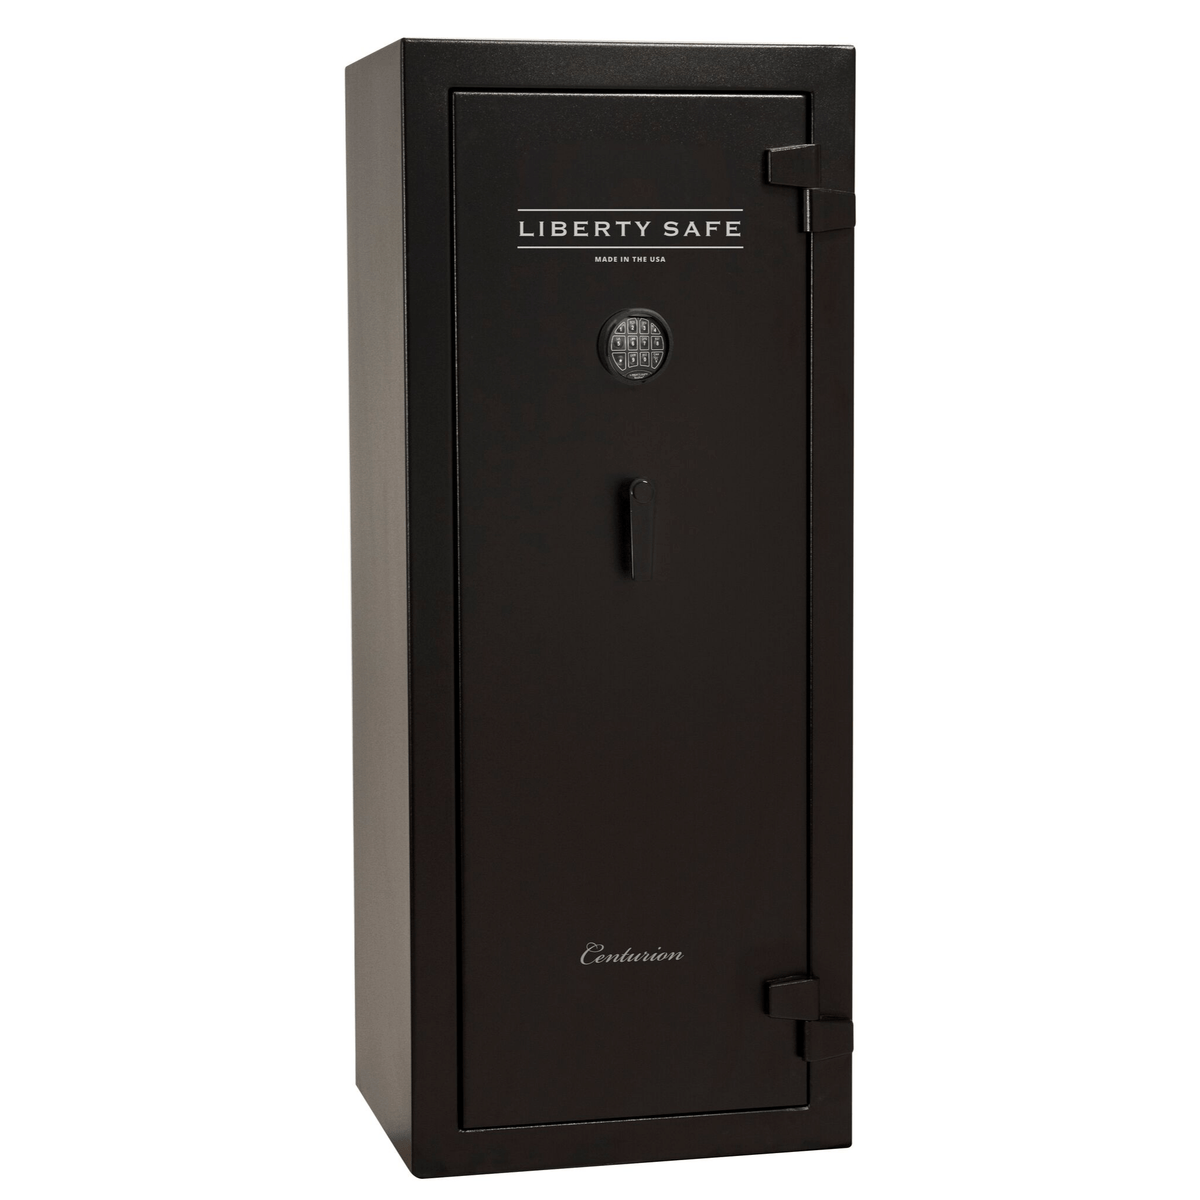 "Centurion Series | Level 1 Security | 30 Minute Fire Protection | Black Textured | Mechanical | 24 | Dimensions: 59.5""(H) x 28.25""(W) x 22""(D)"